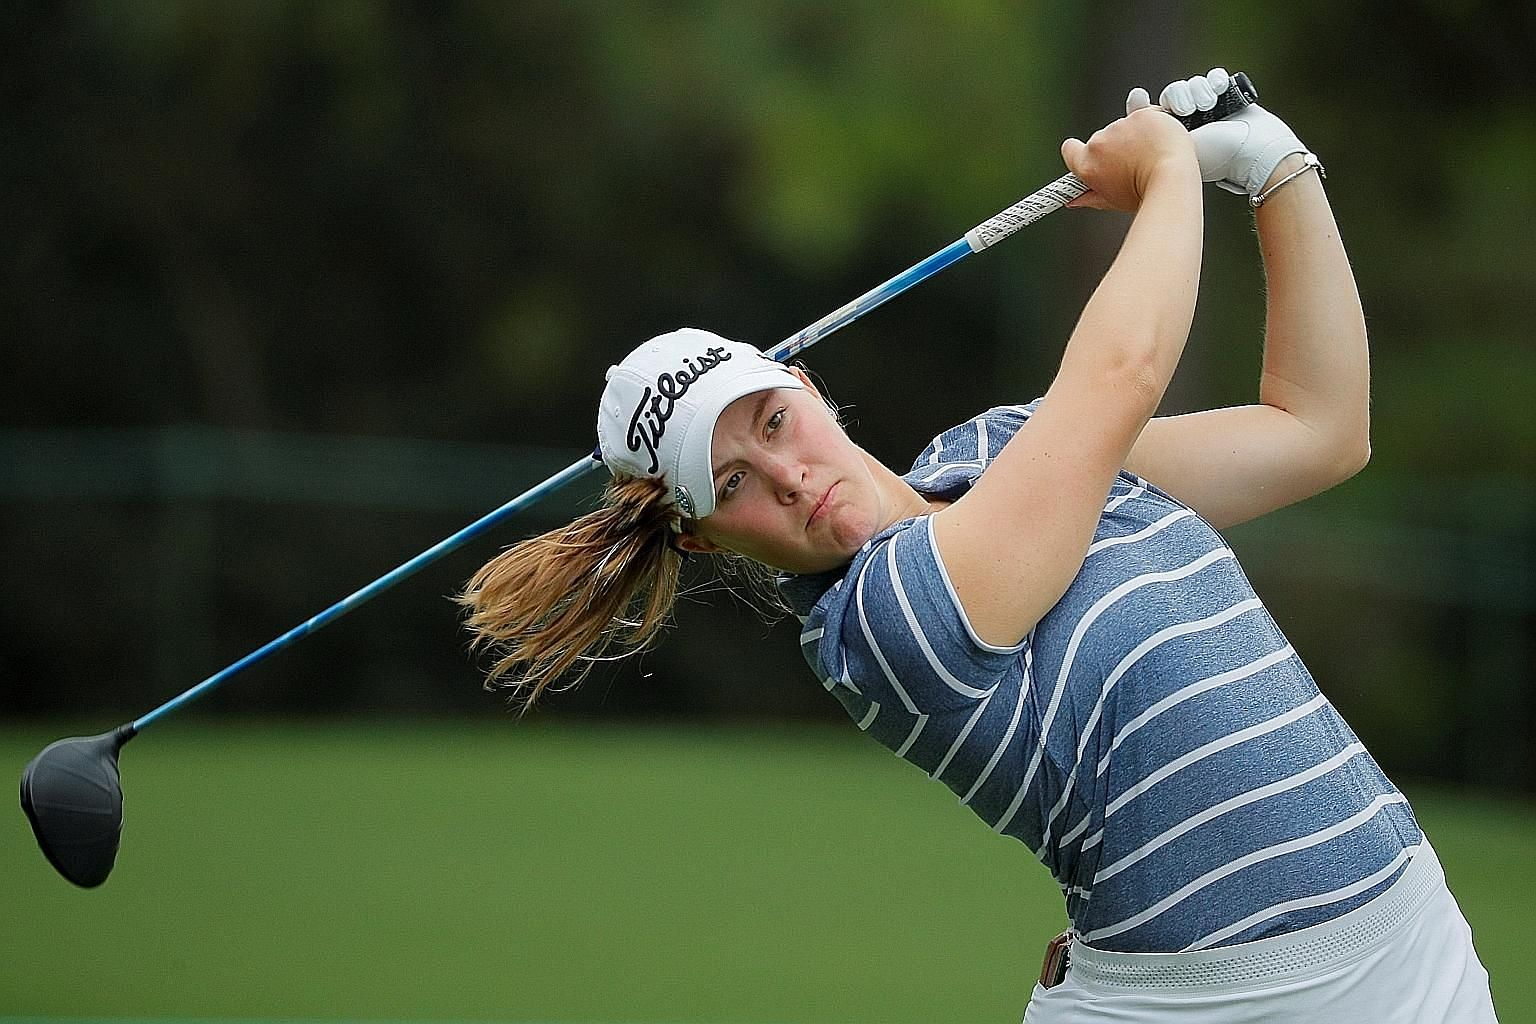 Jennifer Kupcho went five under in the last six holes for a five-under 67 in the final round on Saturday to win the inaugural Augusta National Women's Amateur by four strokes.